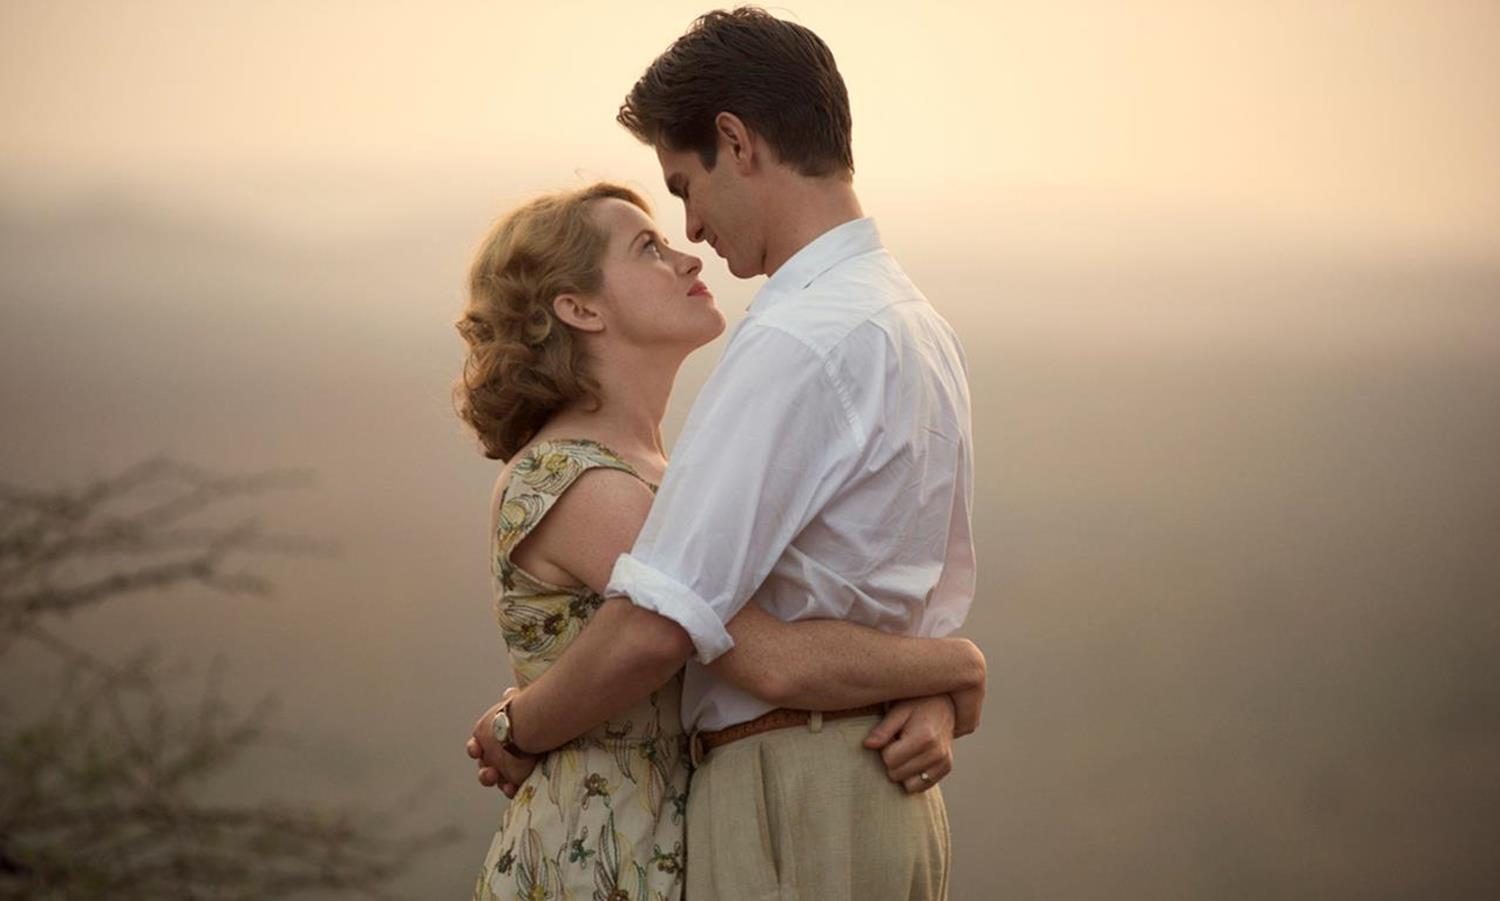 'Breathe' is a textbook example of inspiration porn